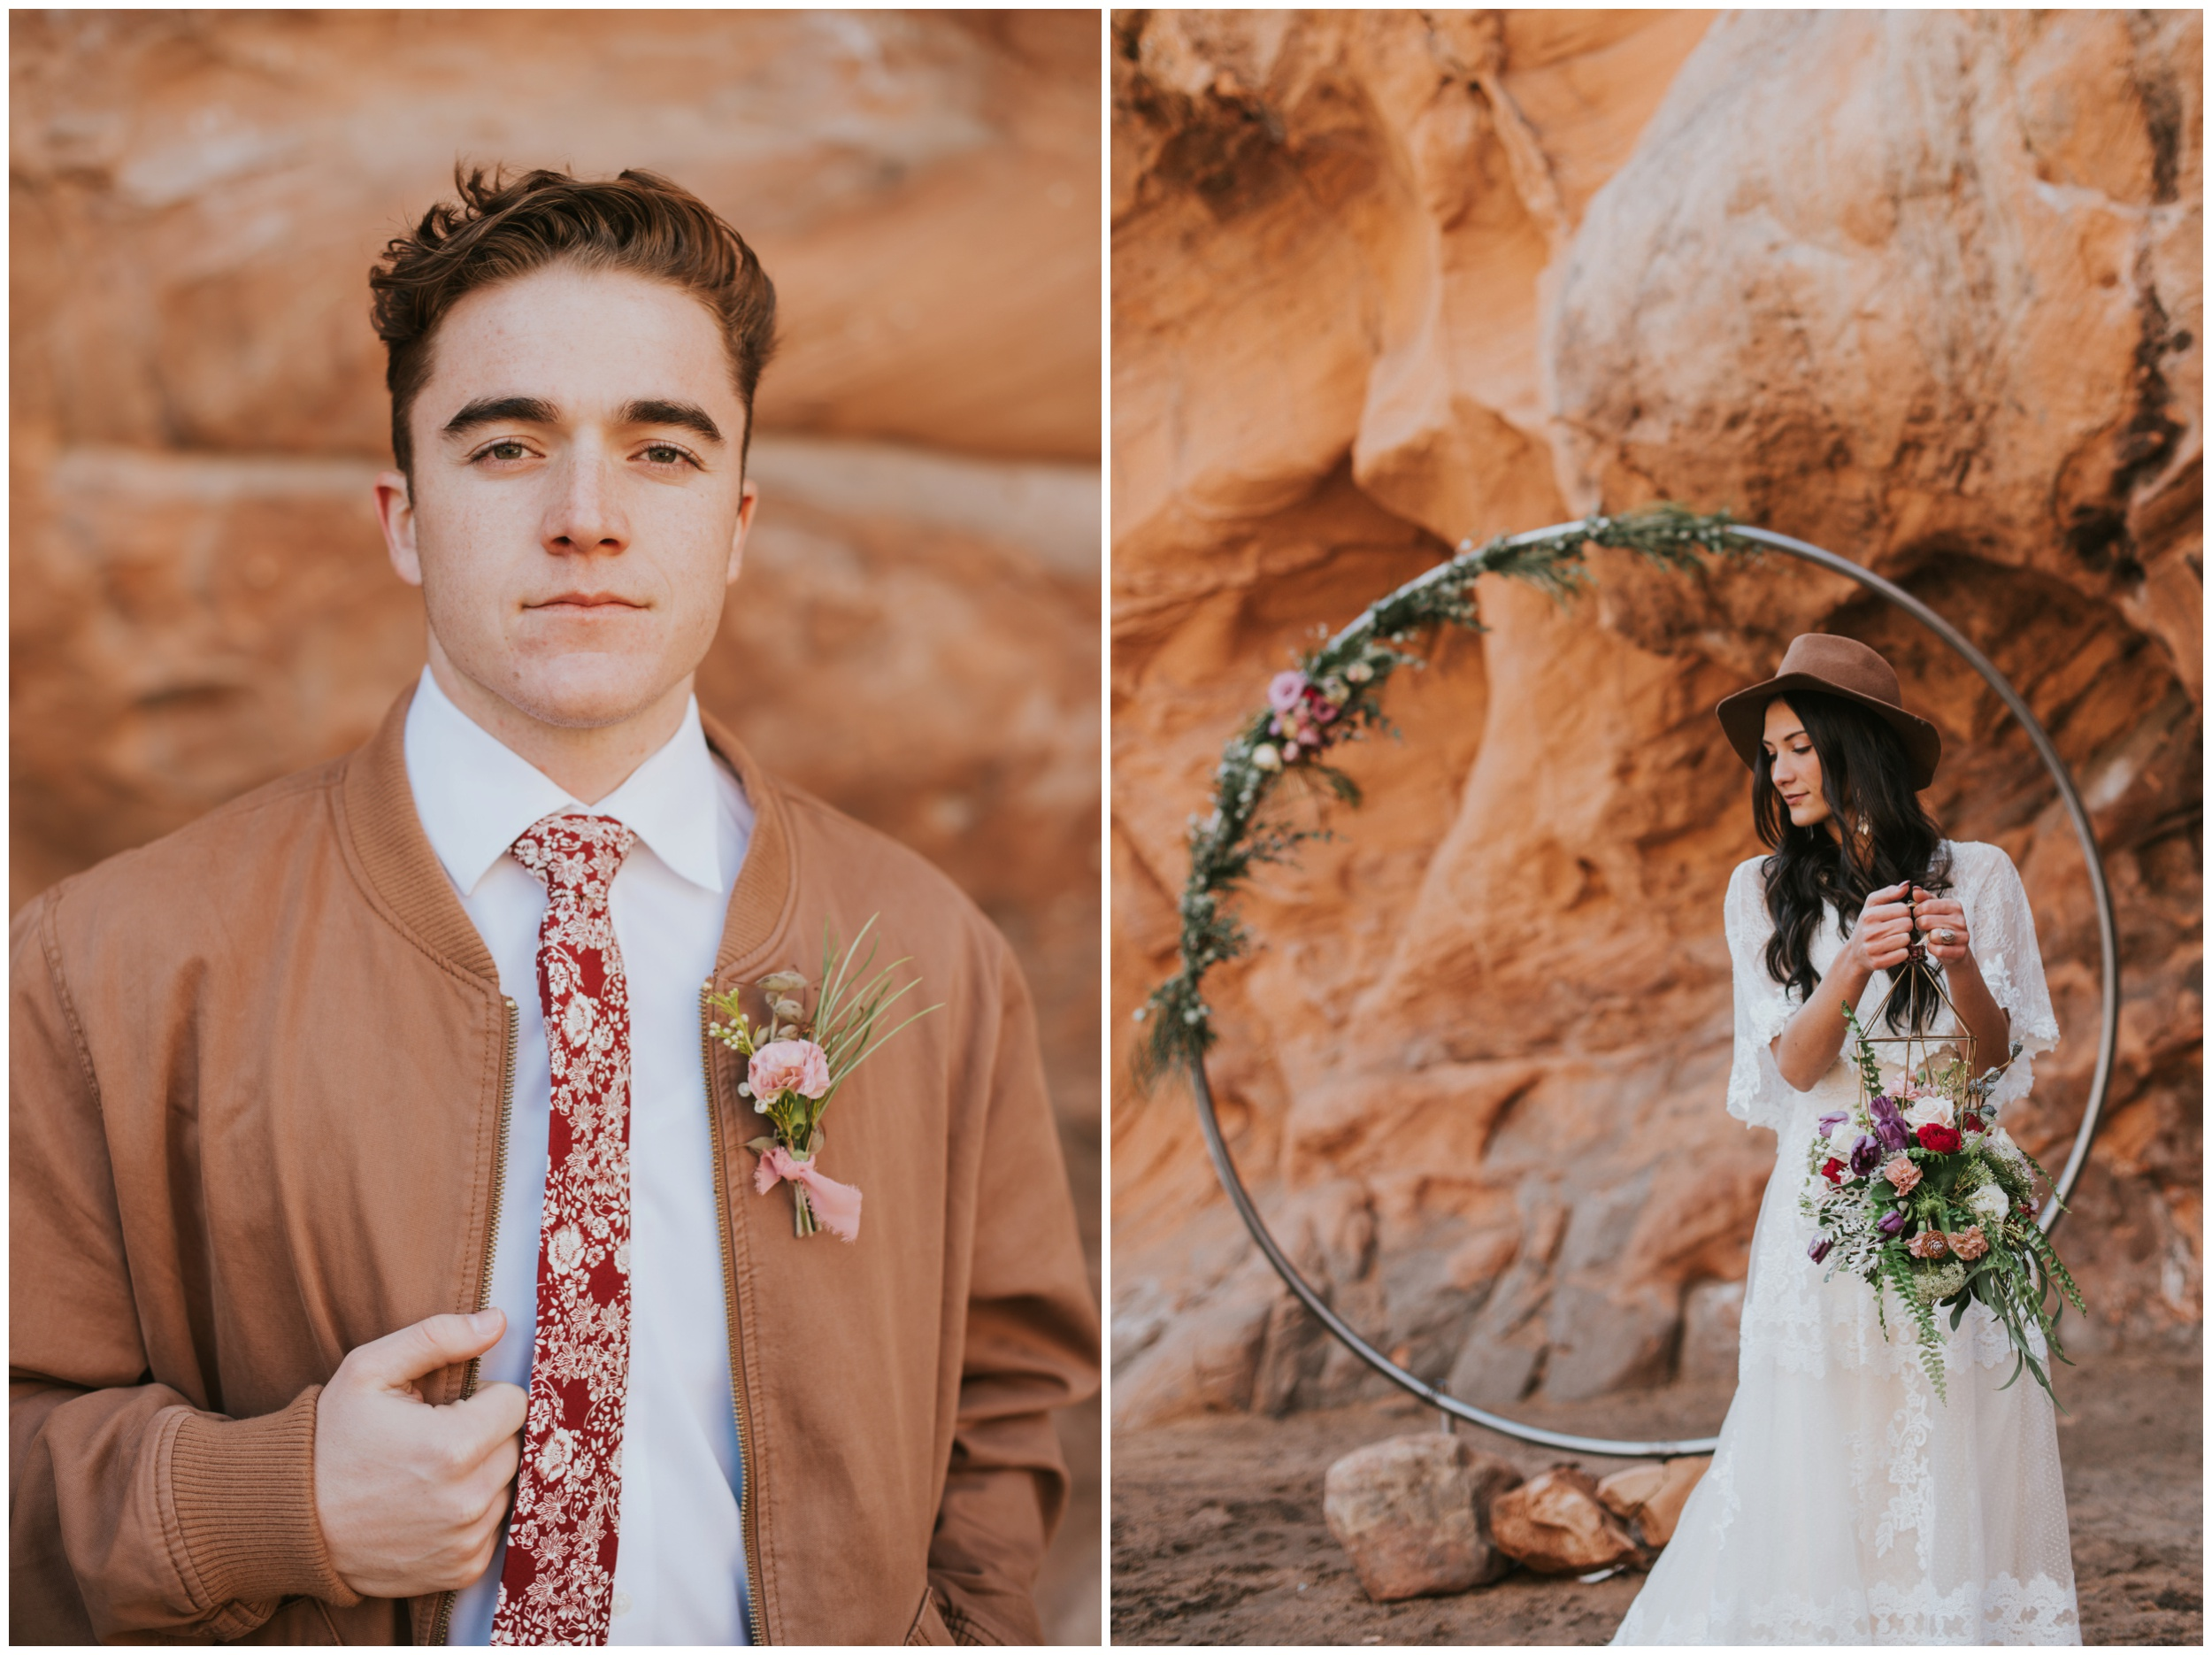 redrockutah-idahophotographer-utahphotographer-wedding-29.jpg